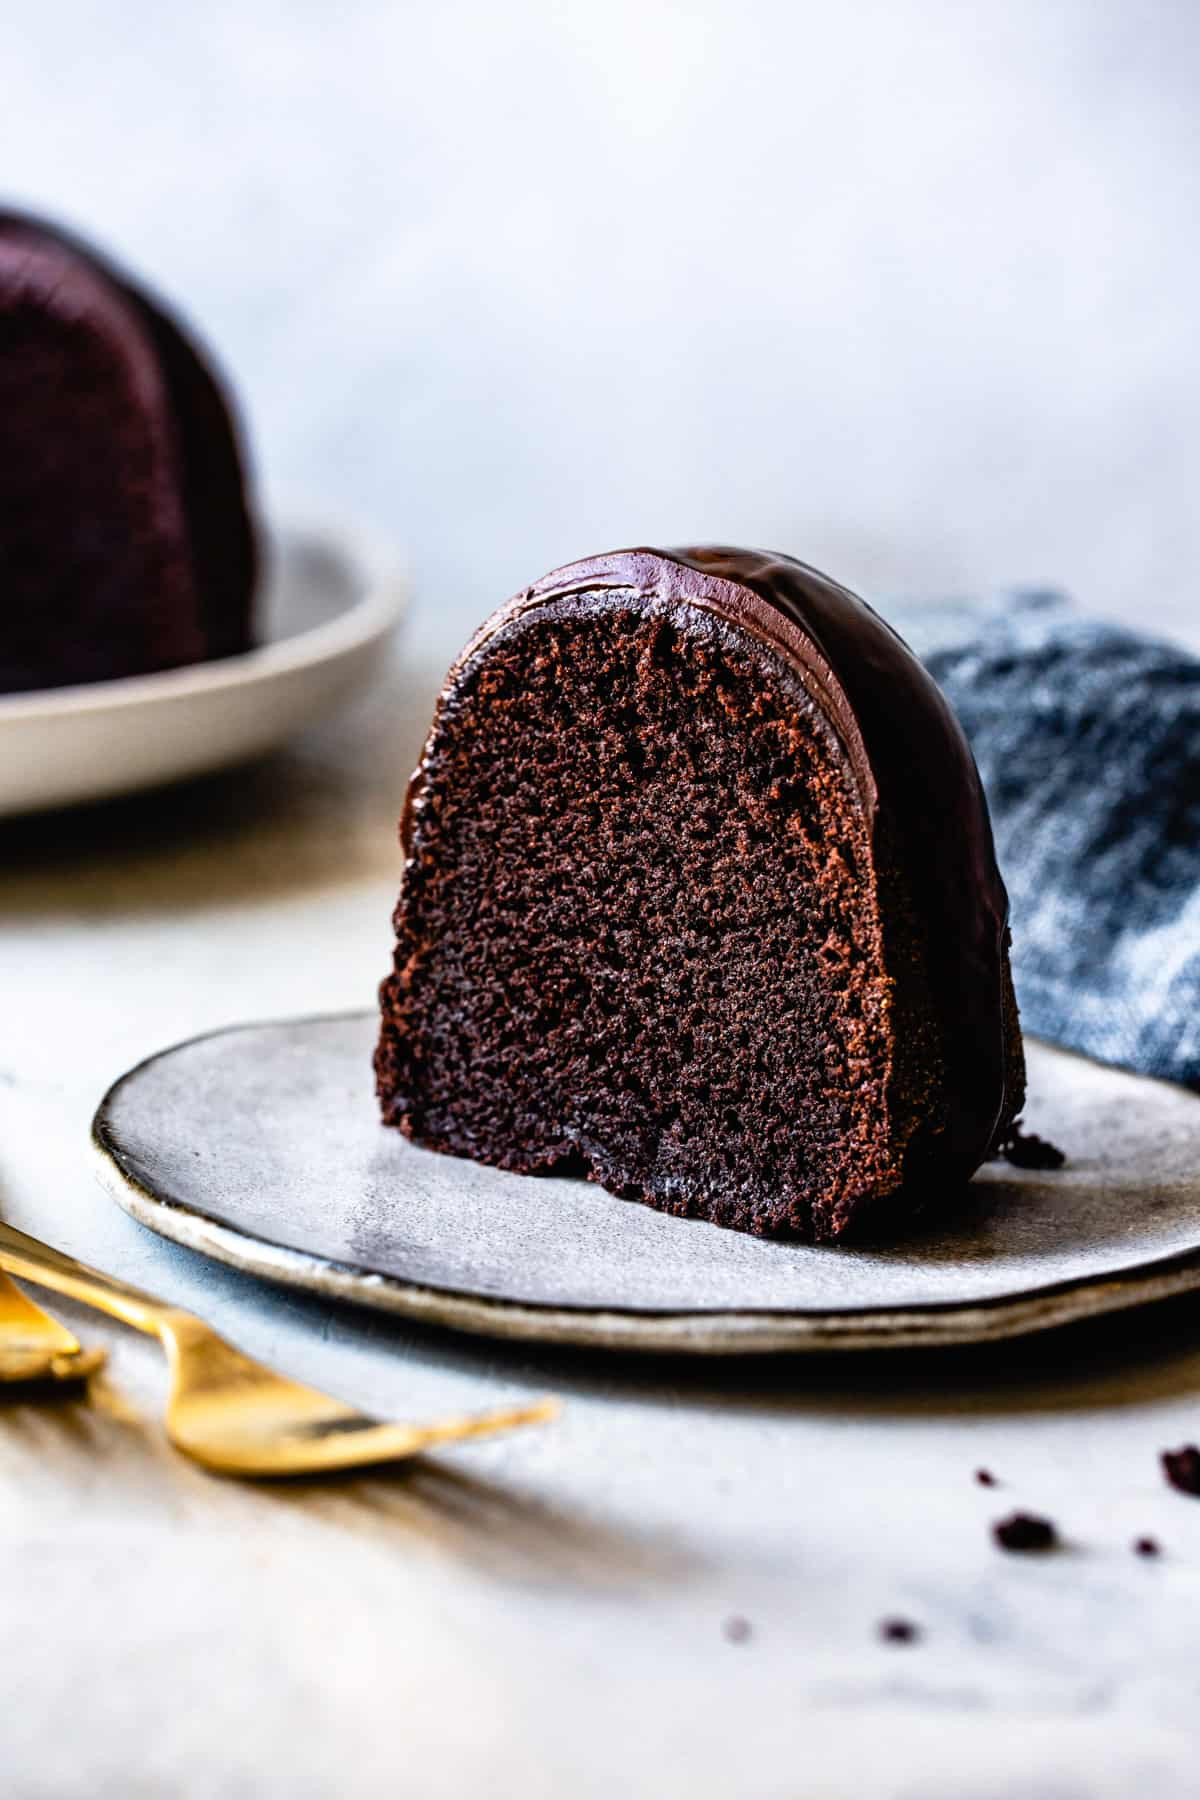 slice of delicious Gluten Free Chocolate Bundt Cake